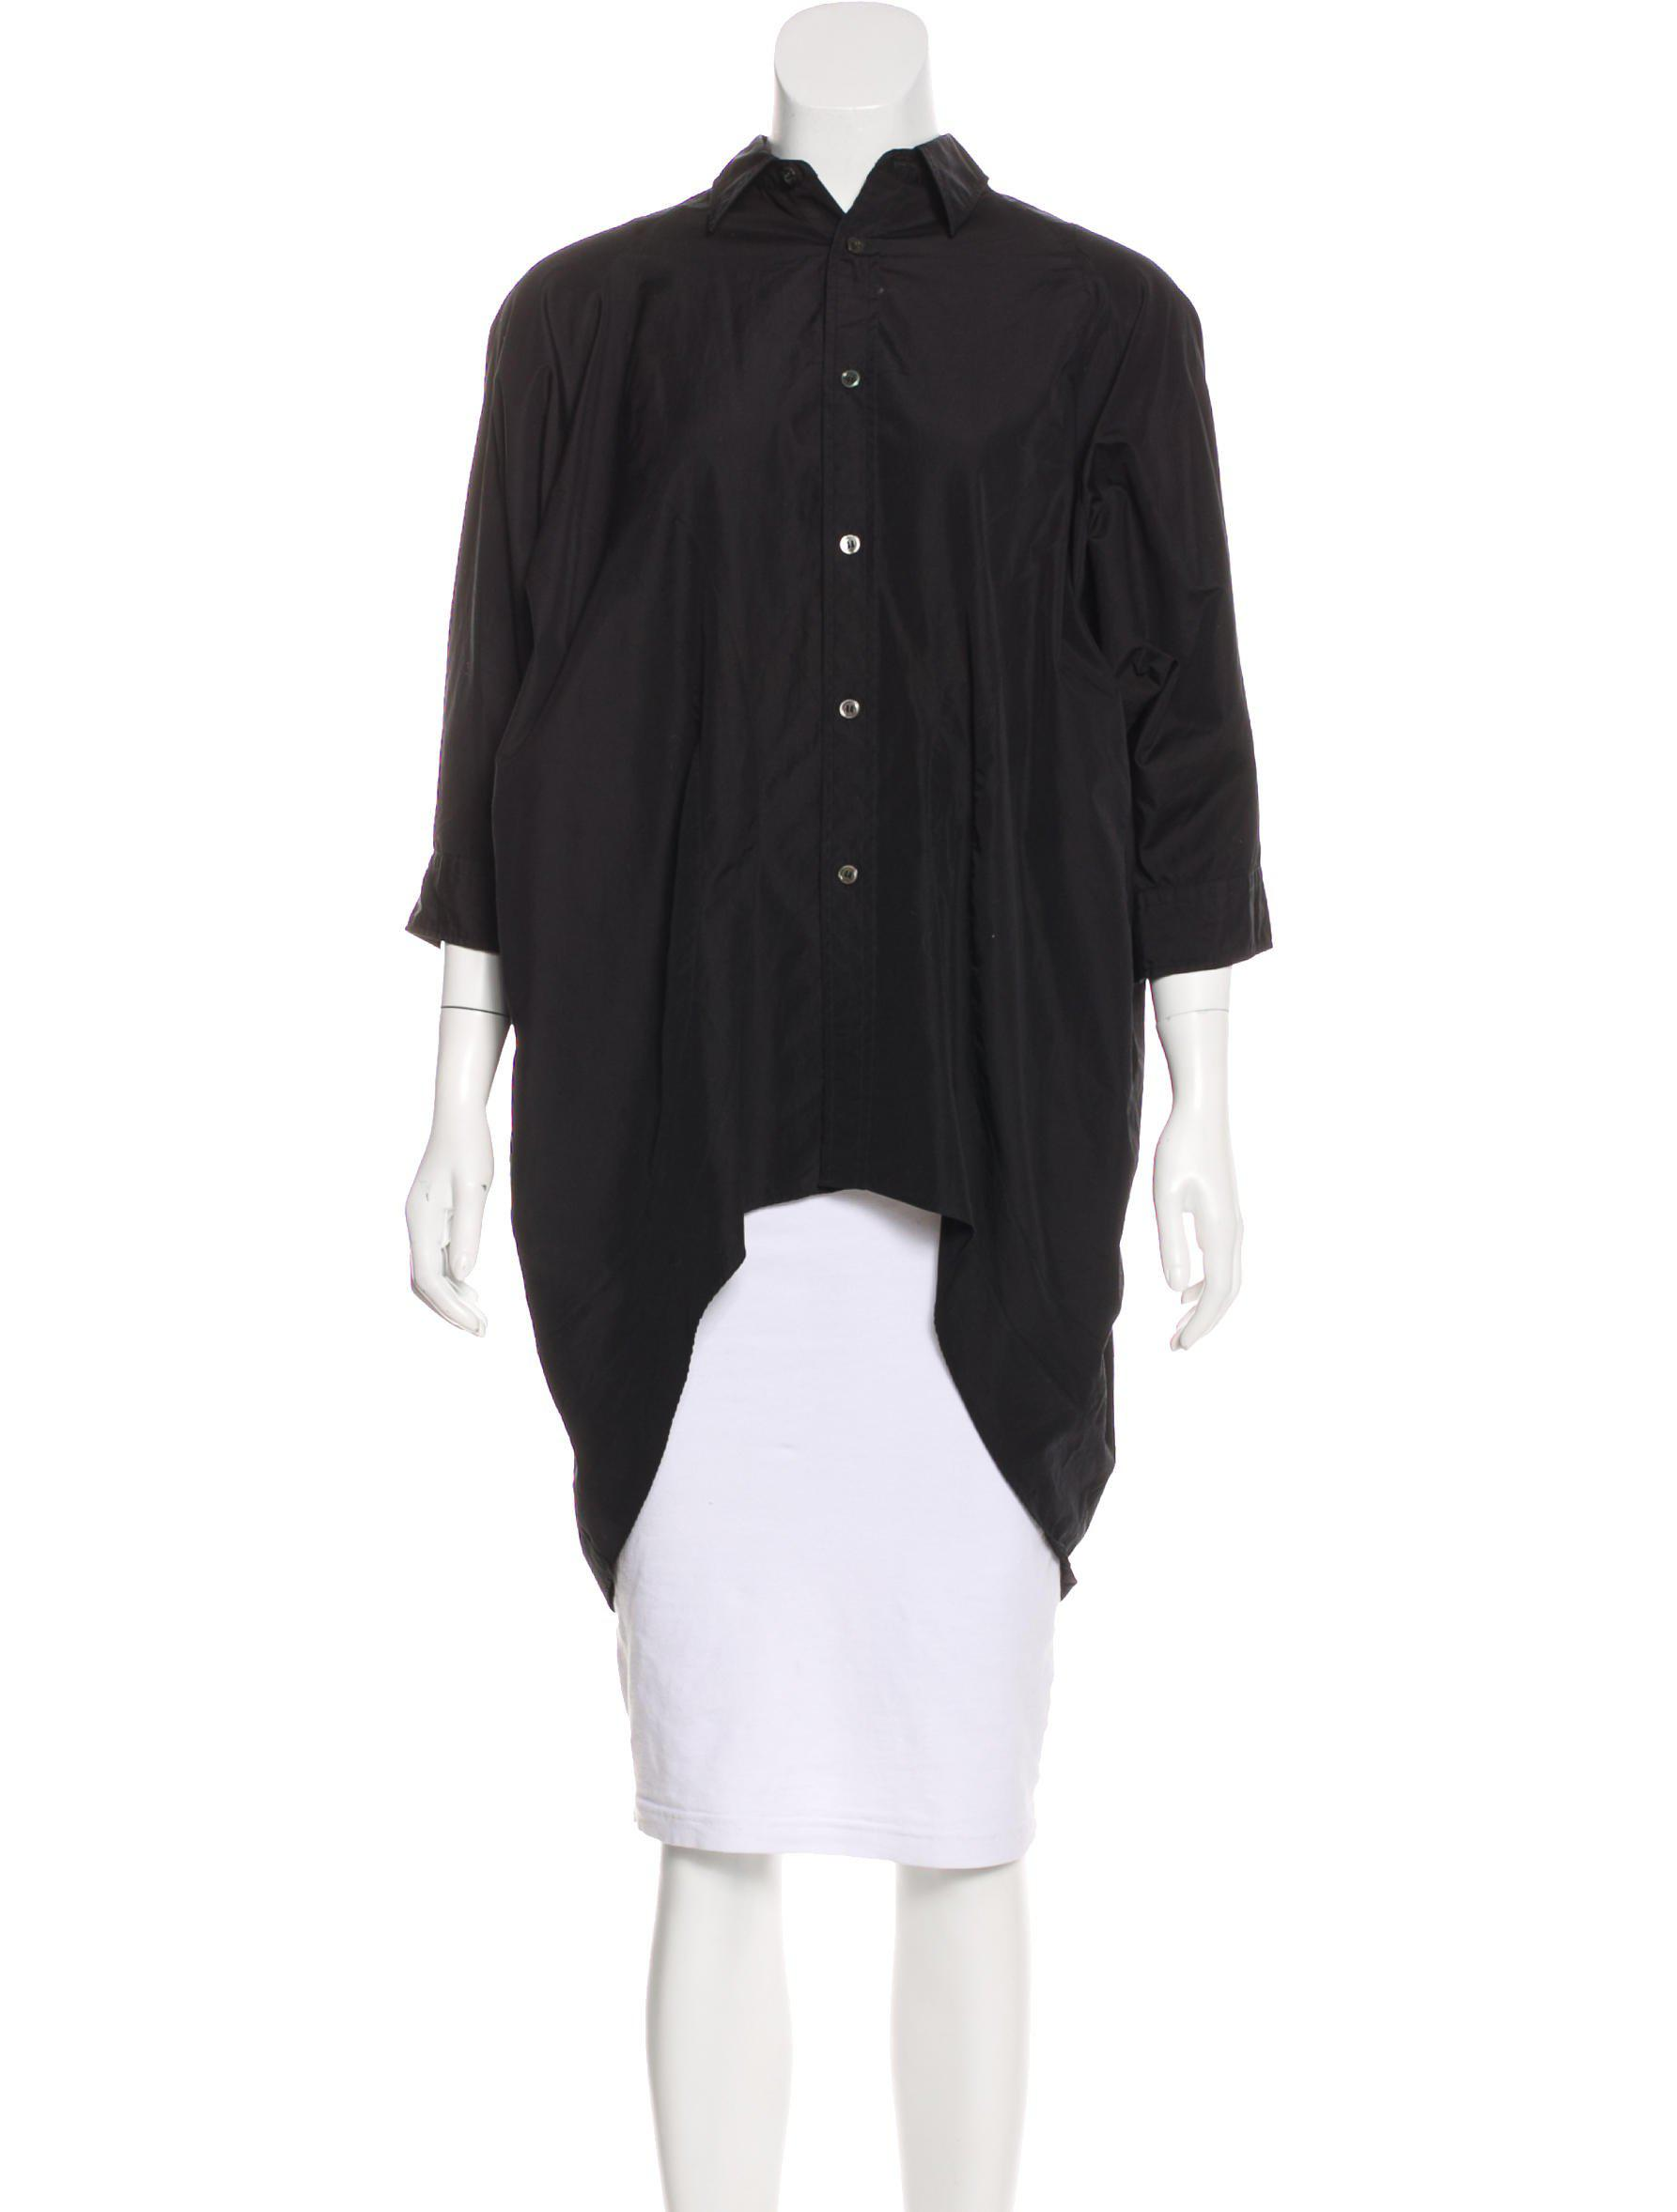 Clearance Fashion Style Cheap Sale How Much Junya Watanabe Oversize Button-Up Top Discount Extremely Cheap Affordable Sale Release Dates dXgtF